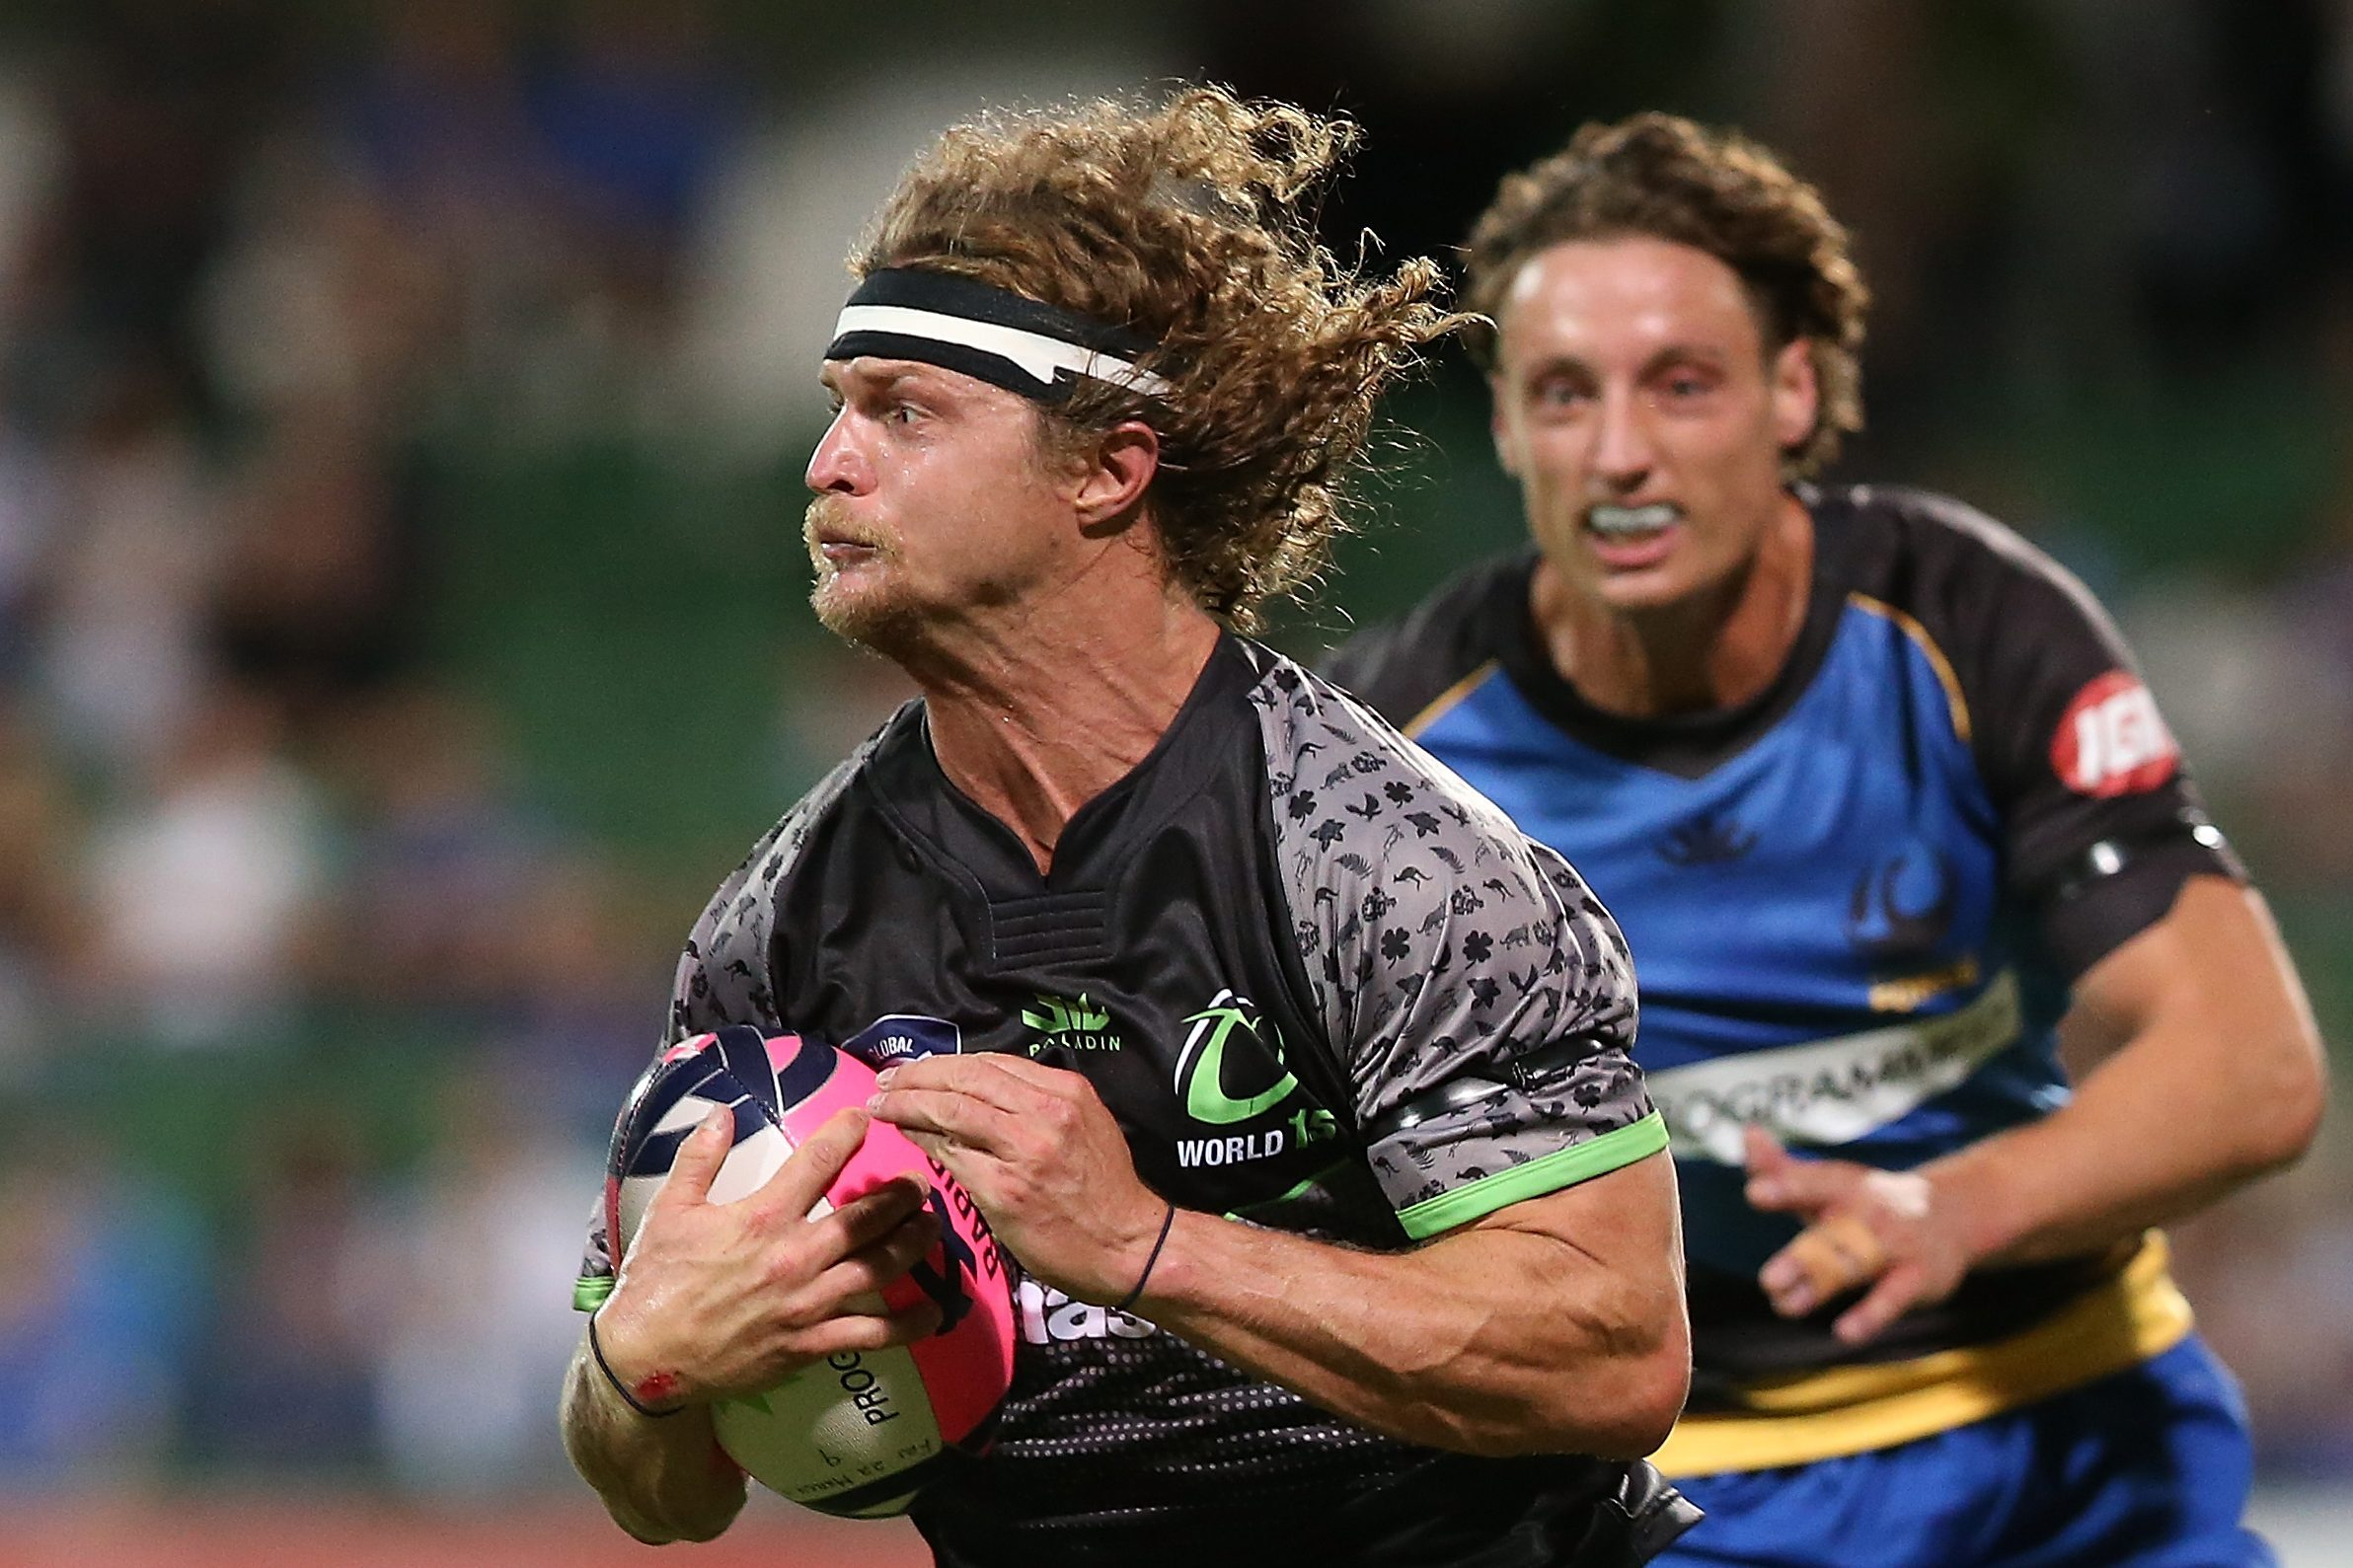 Nick Cummins, Australian rugby guy, runs with the ball in 2019